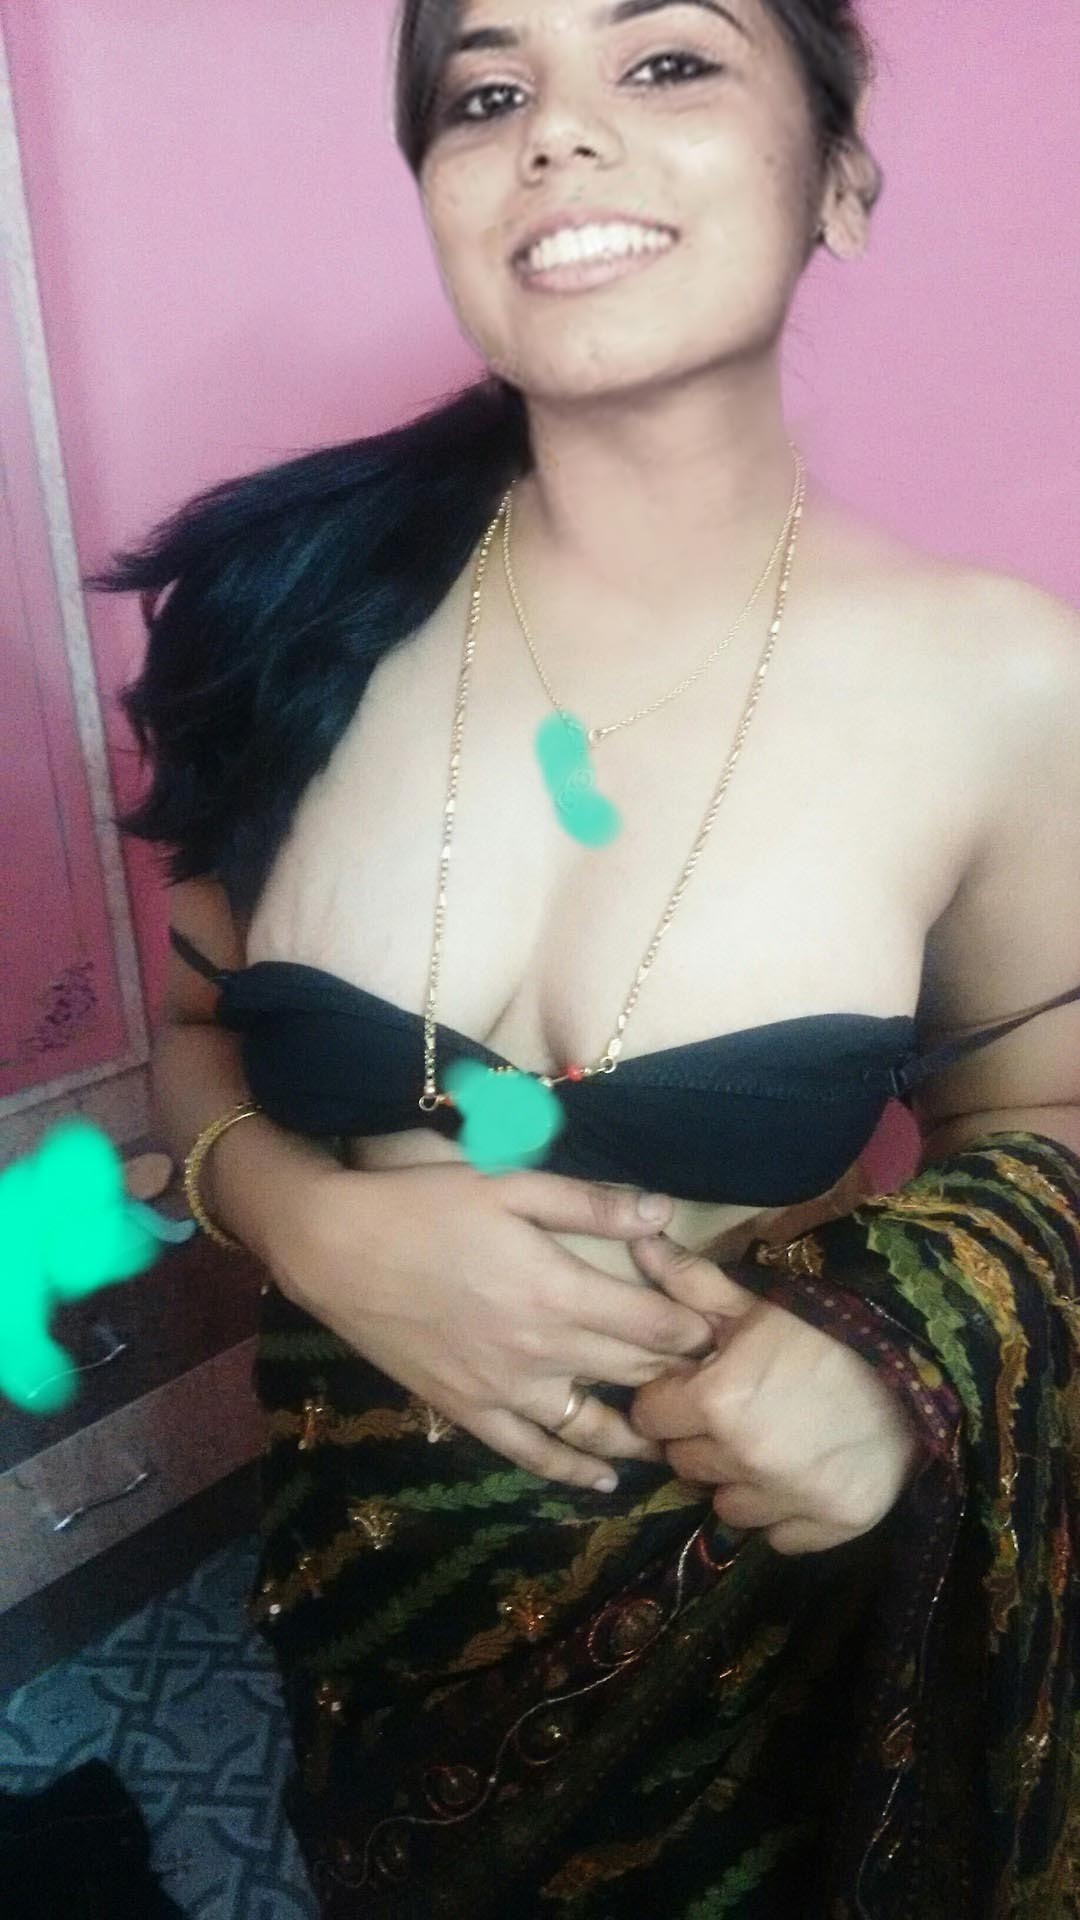 hot bhabi showing her boobs - desi mms videos,indian porn videos